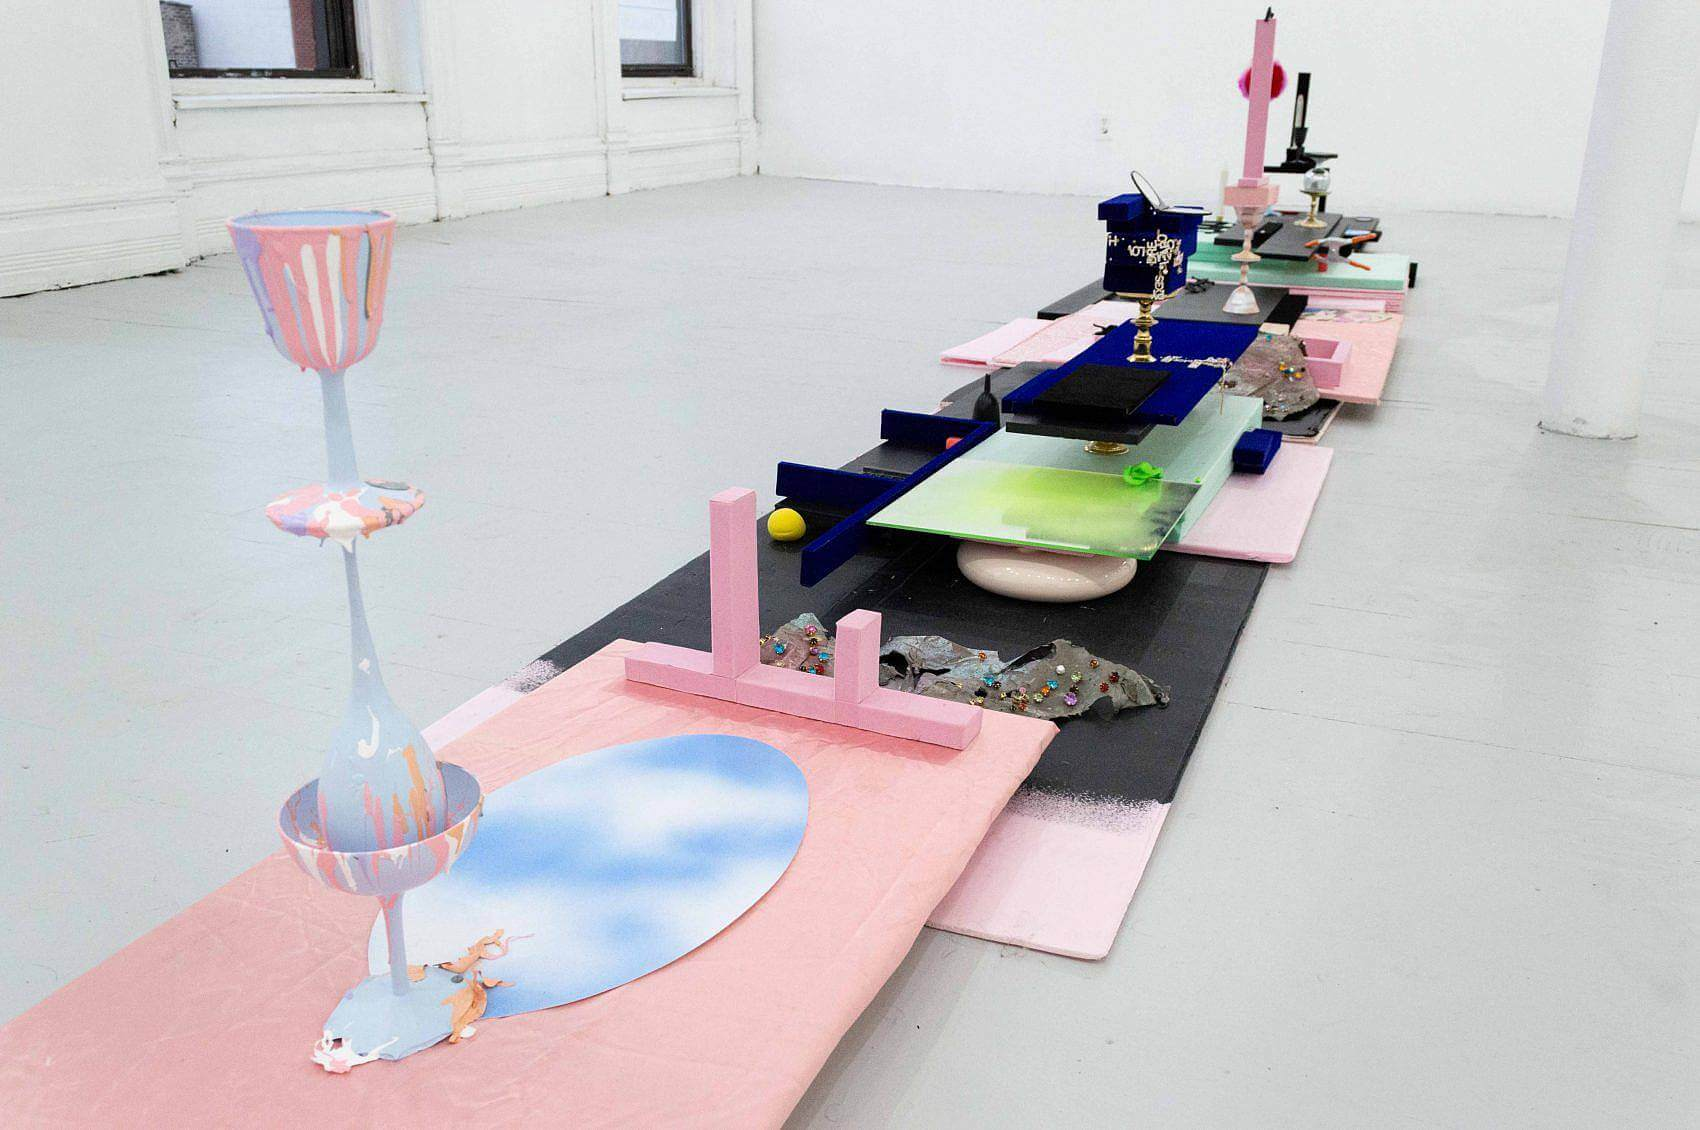 There is a pink sheet of foam wrapped in pink fabric. There is an oval sheet of paper displaying a blue sky with clouds laying on top. There is also a stack of three different light blue wine glasses with dried pink, orange, and white painting going down the sides.